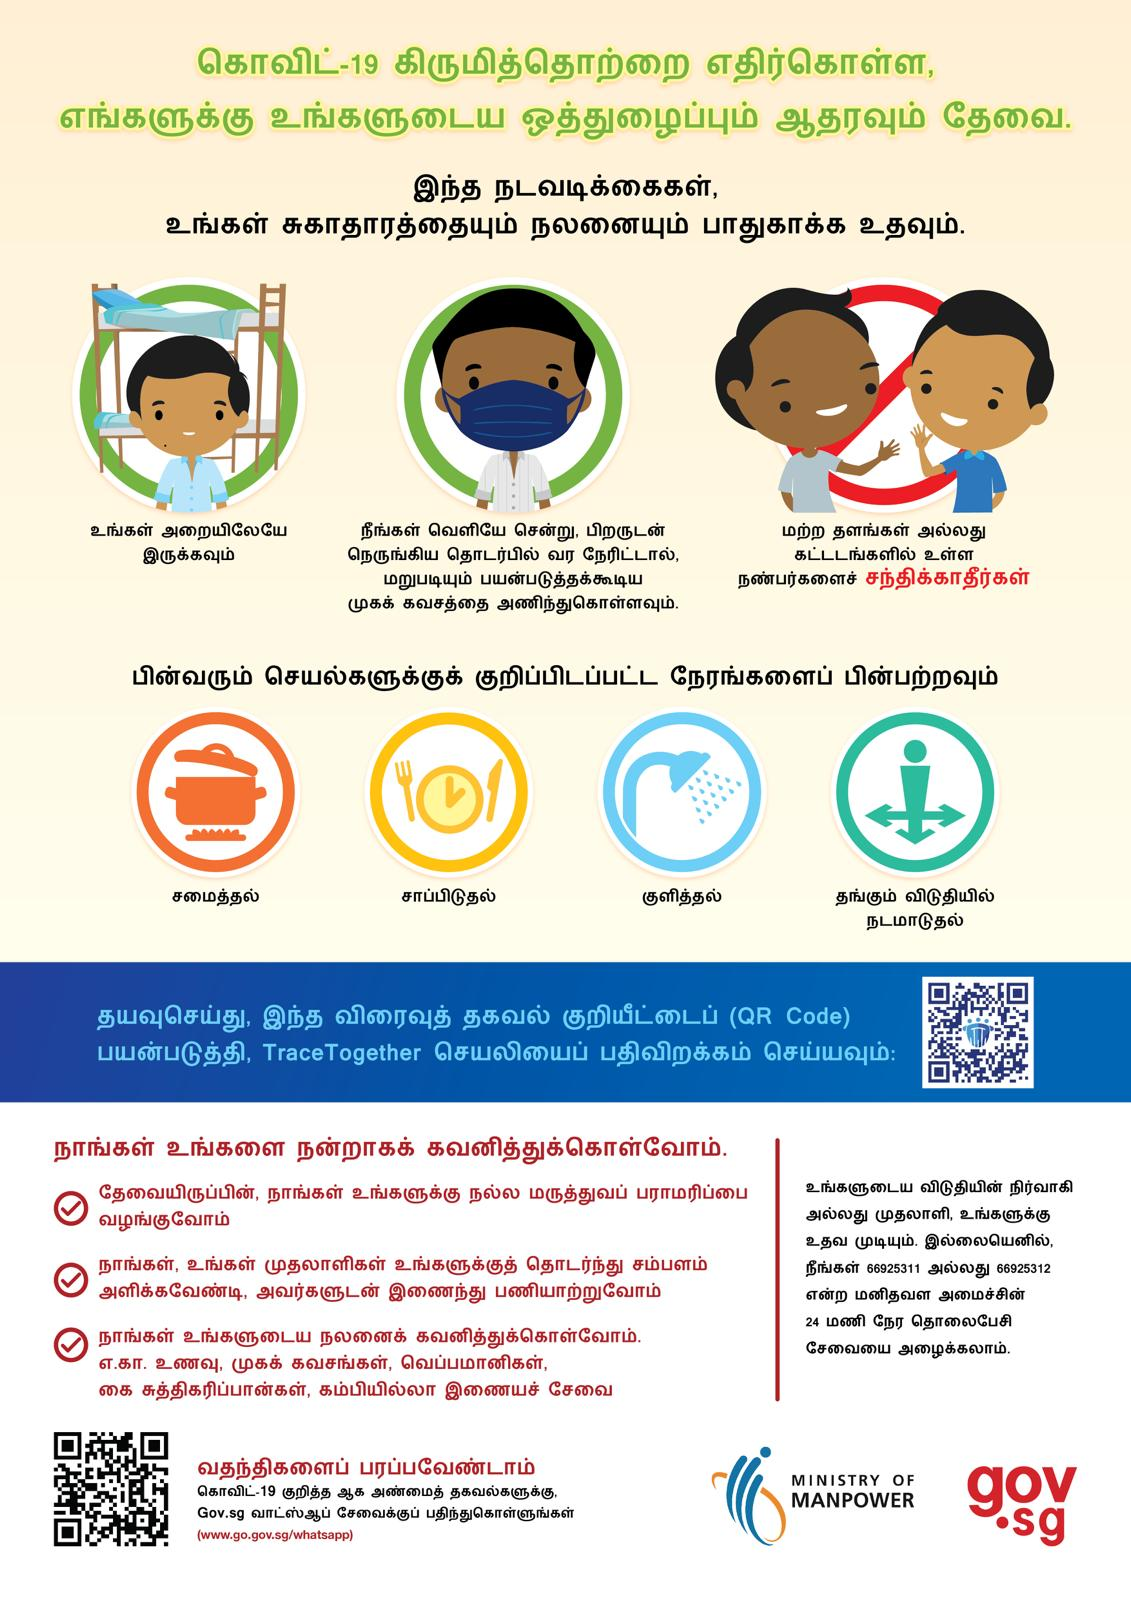 MOM Advisory Tamil